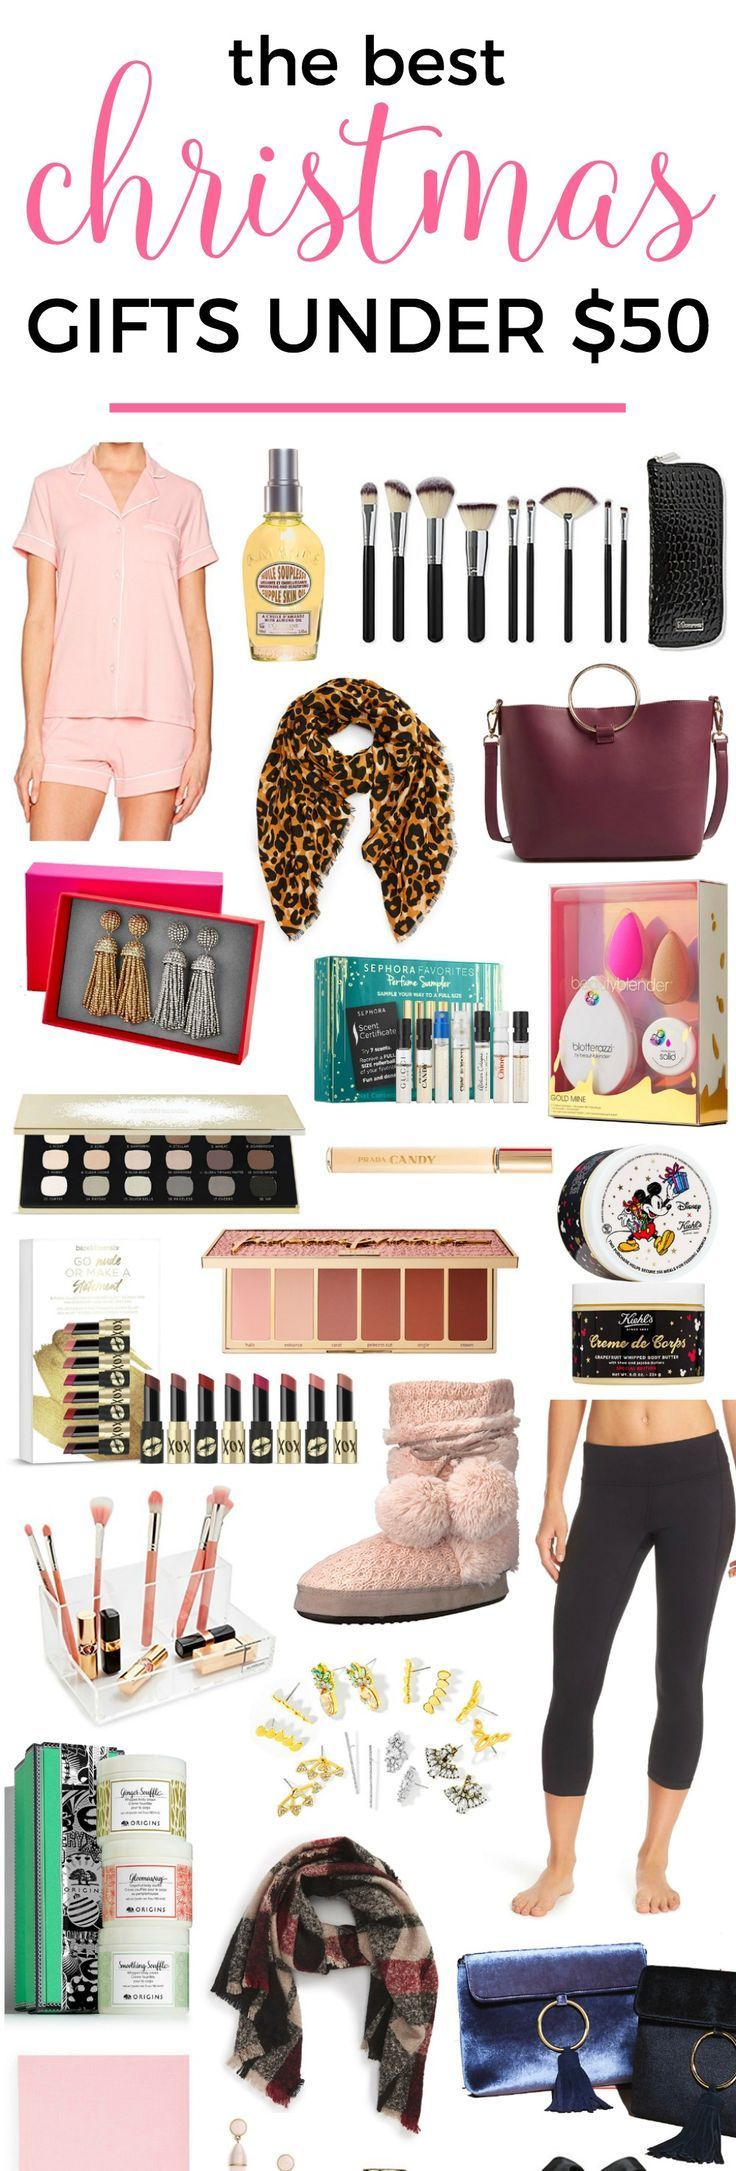 Christmas Gift Ideas for Women Under $50 | Geschenkideen | Pinterest ...